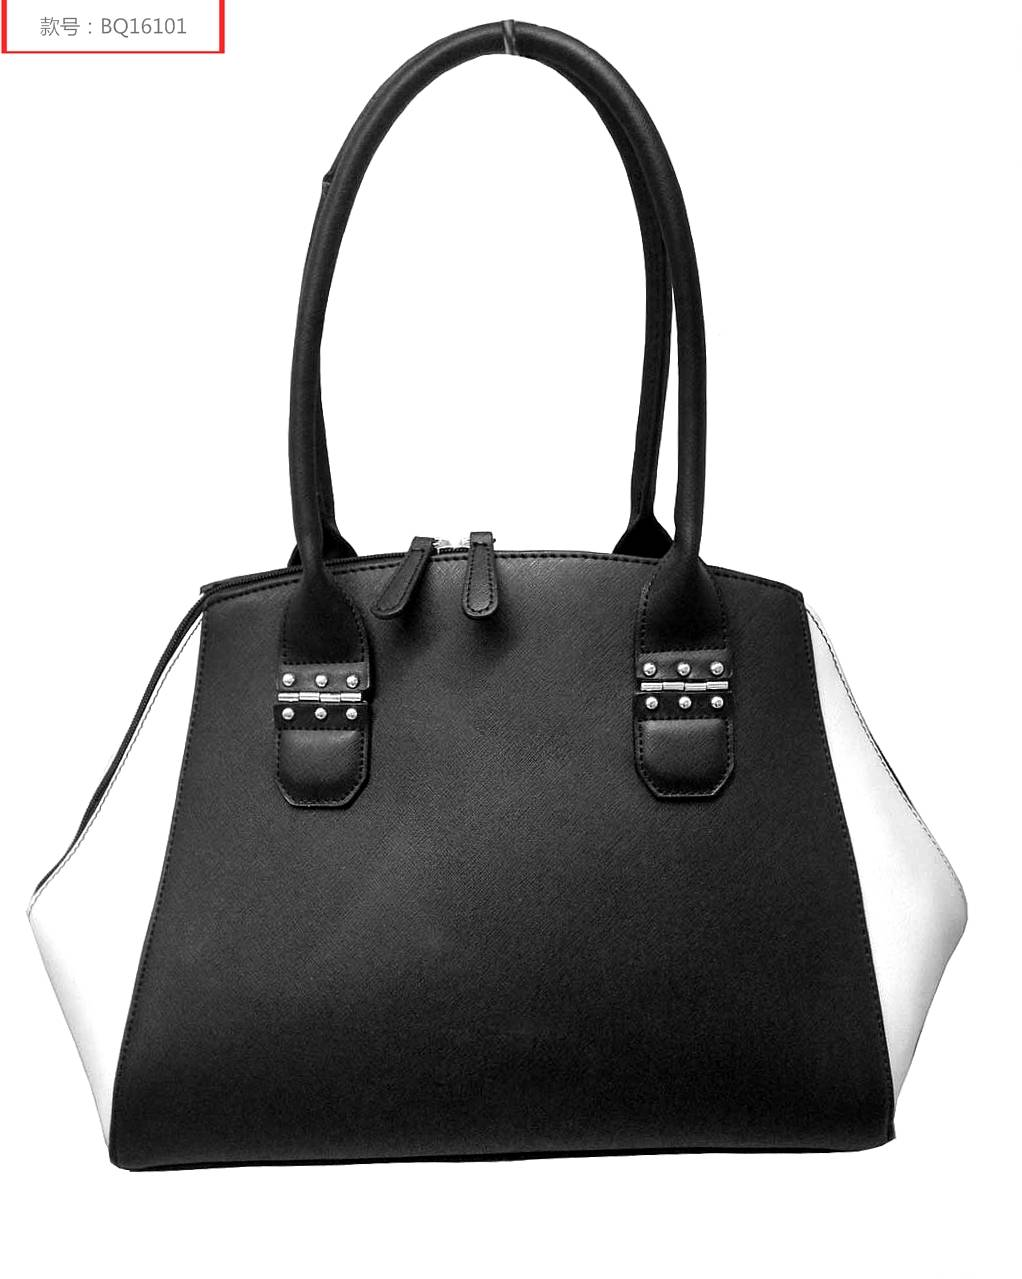 handbags-colorblock tote BQ16101